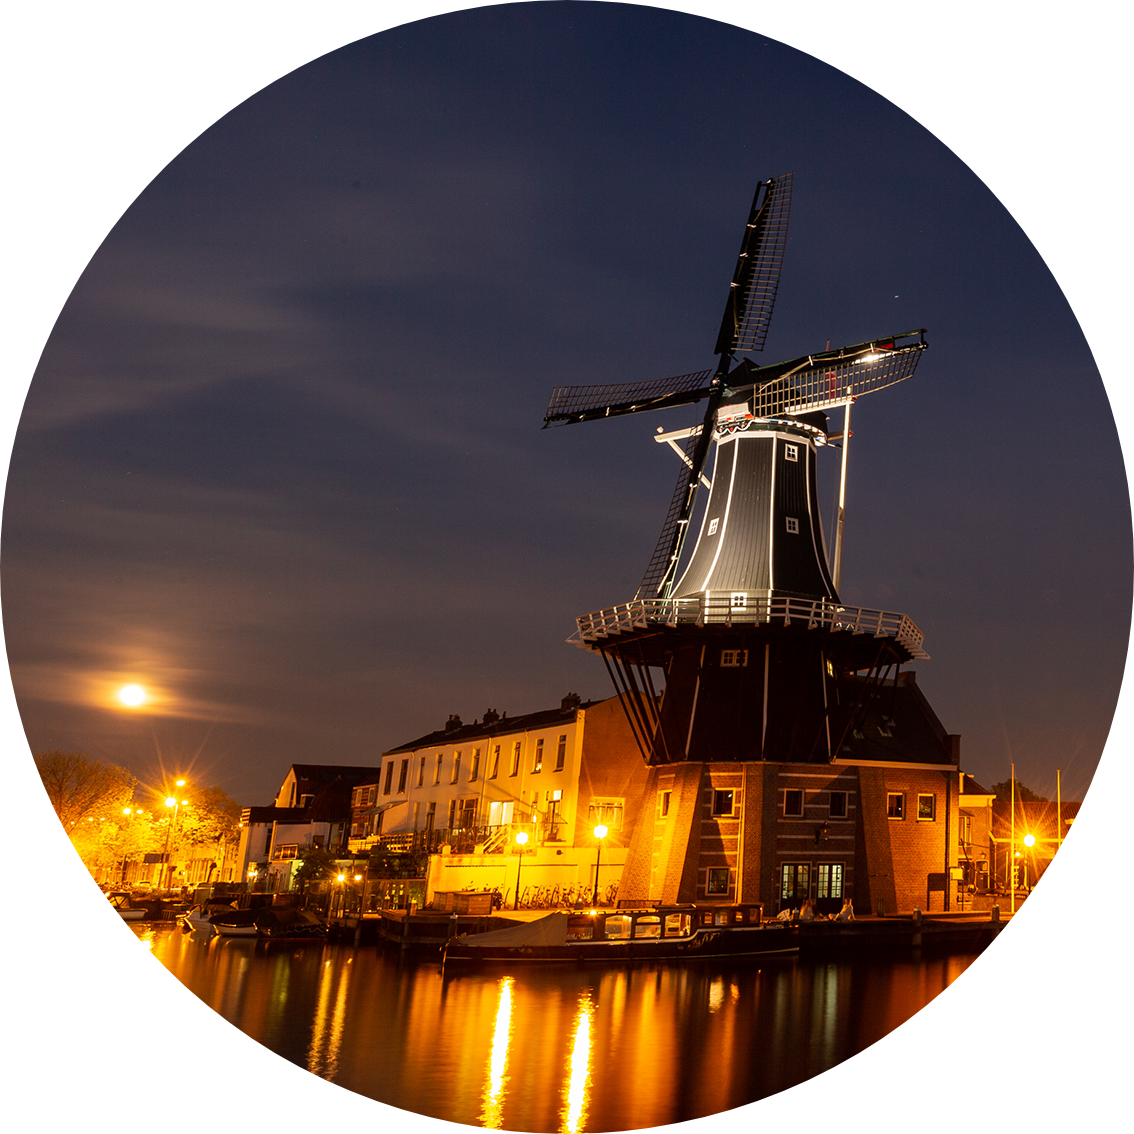 Molen De Adriaan (Adriaan Windmill) in Haarlem, the Netherlands